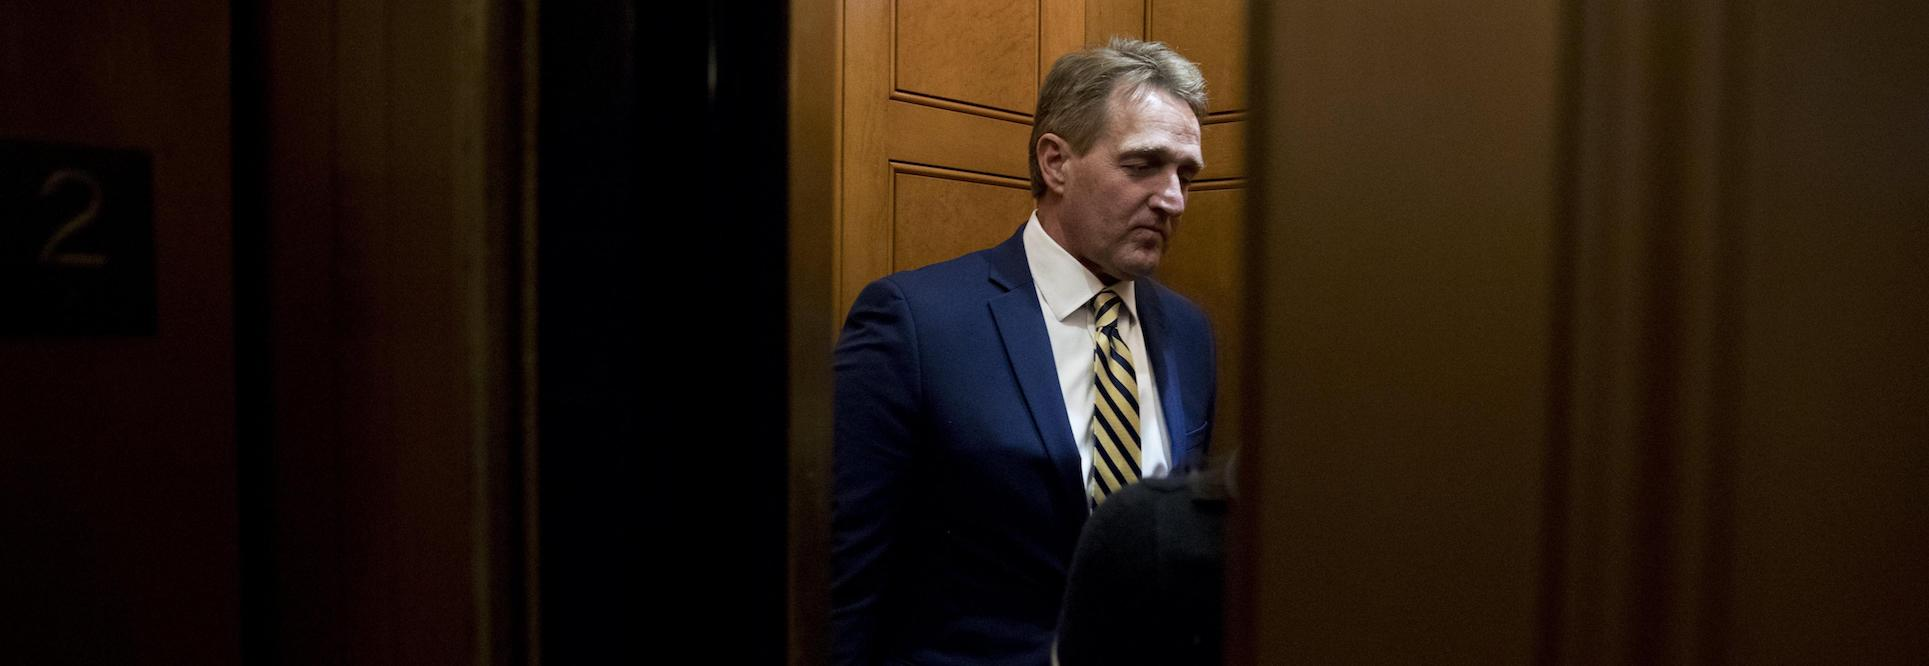 Flake the ally of truth